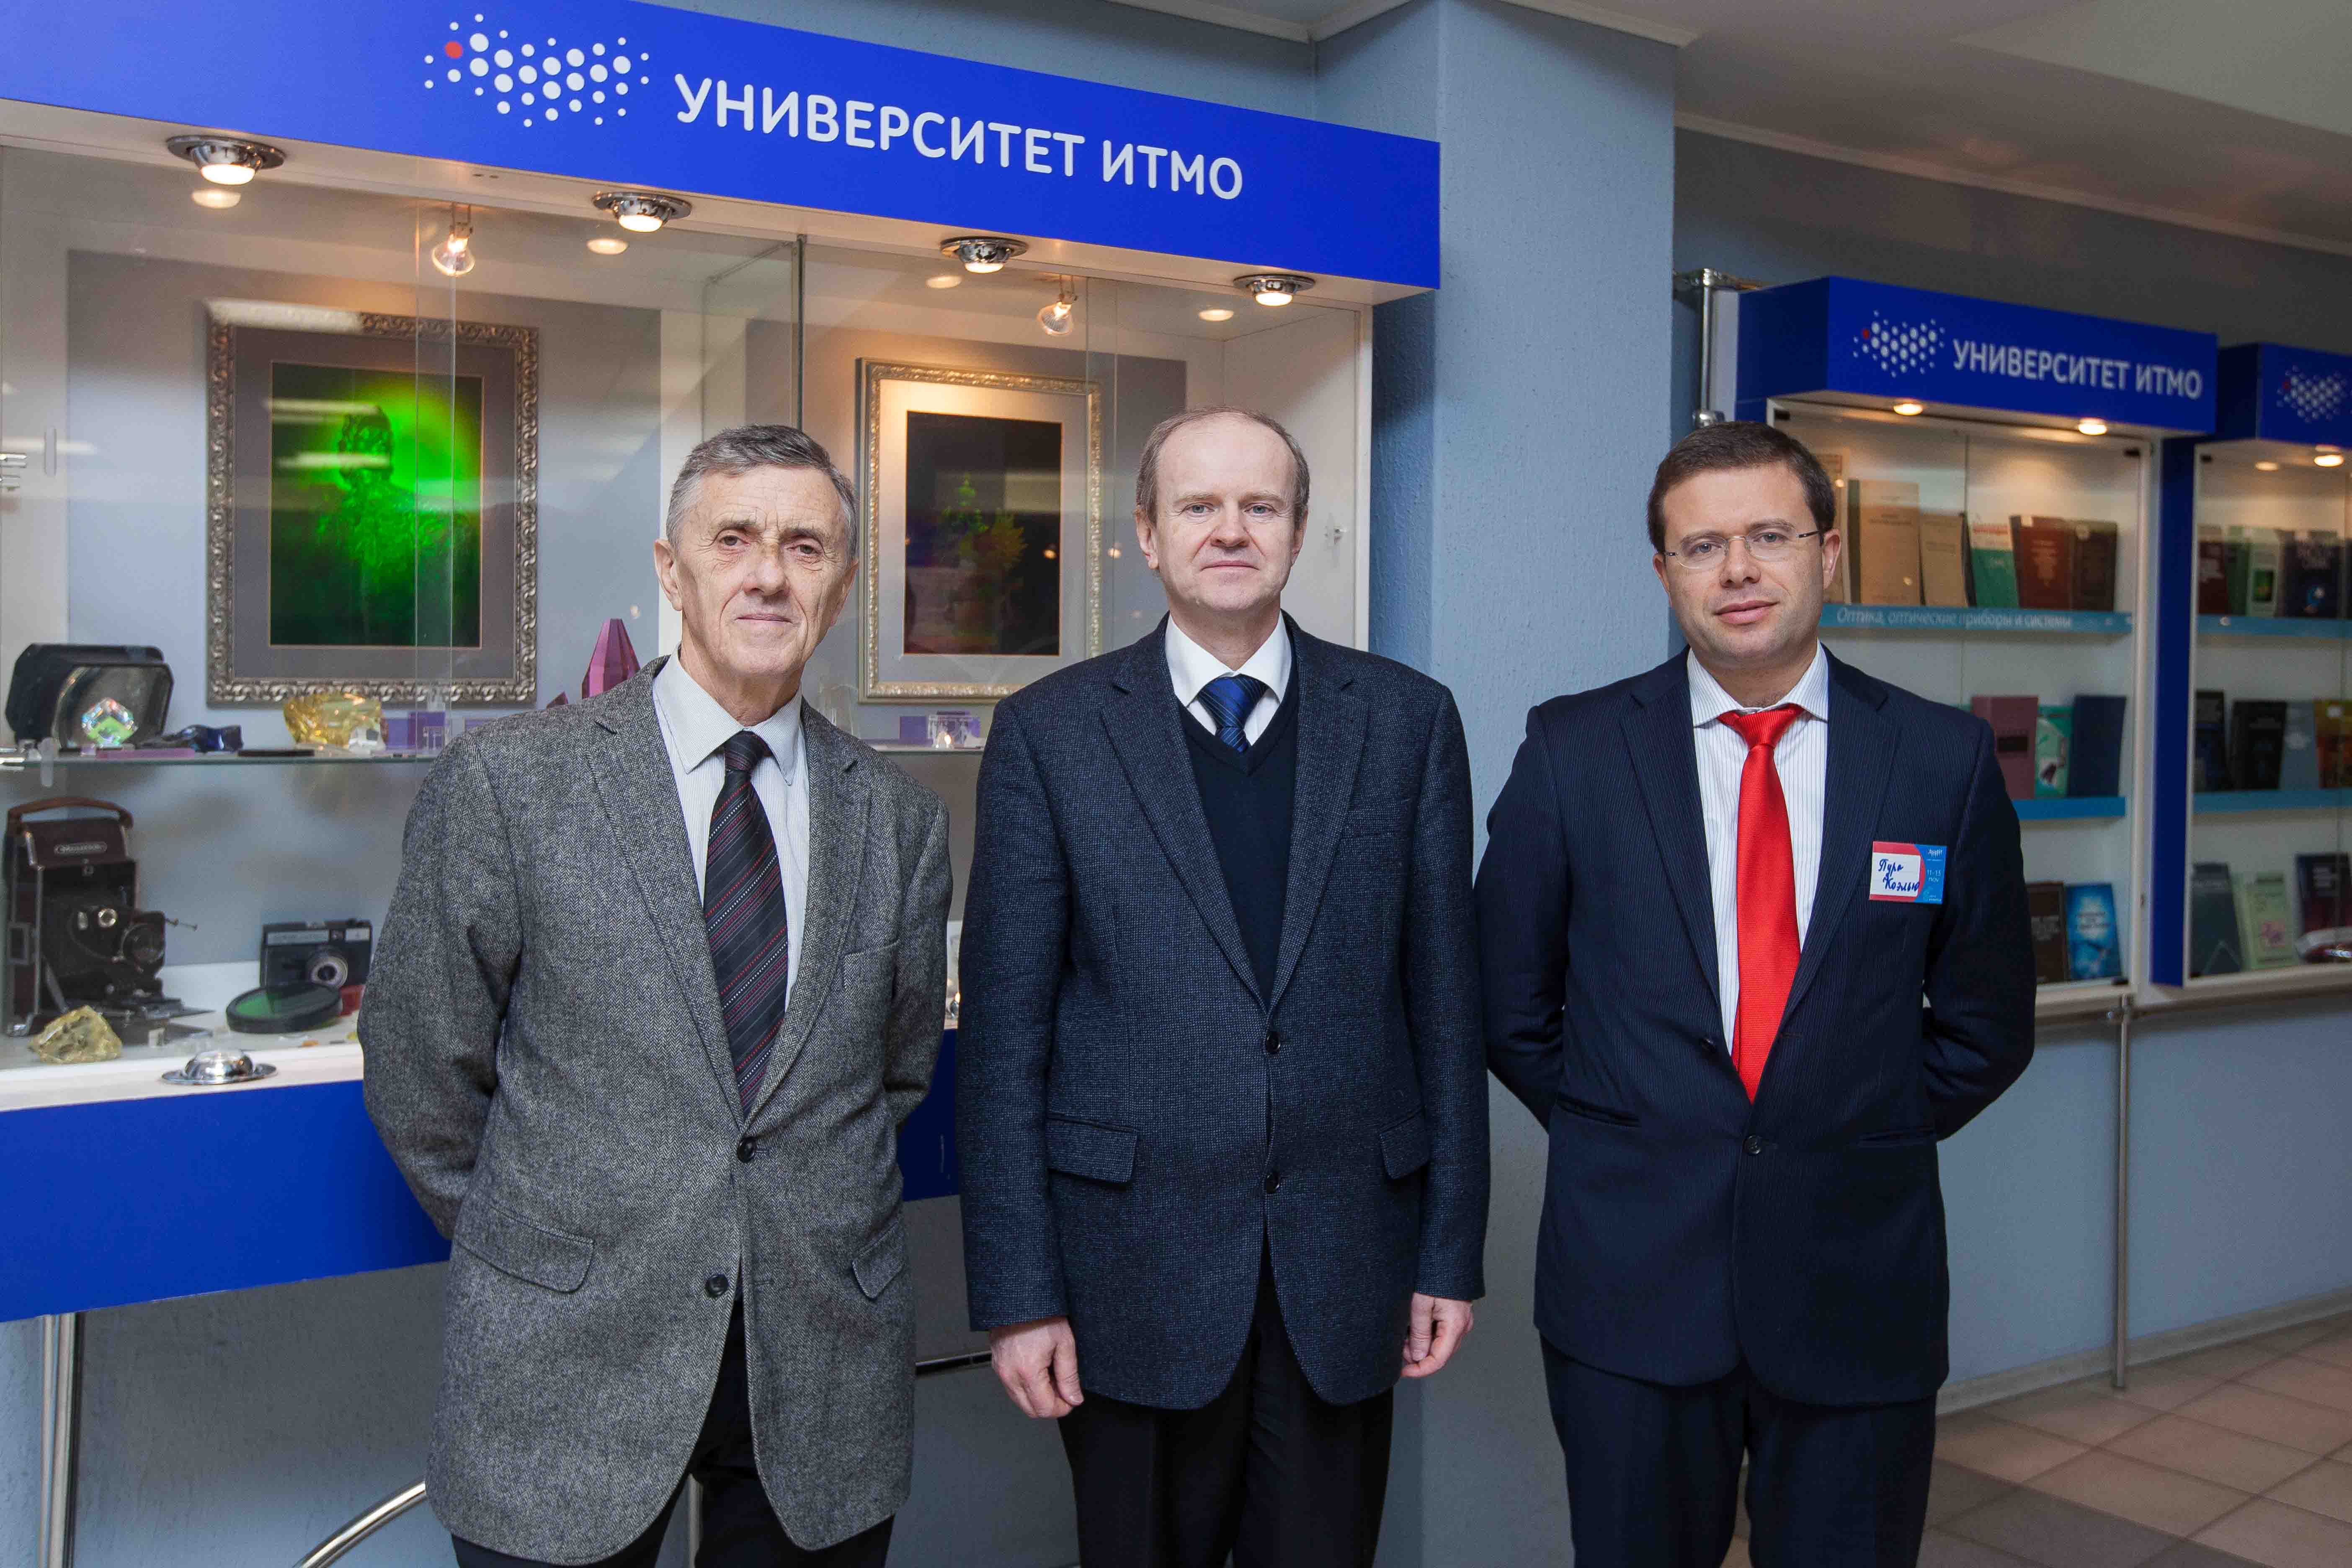 Gennady Lukianov together with colleagues